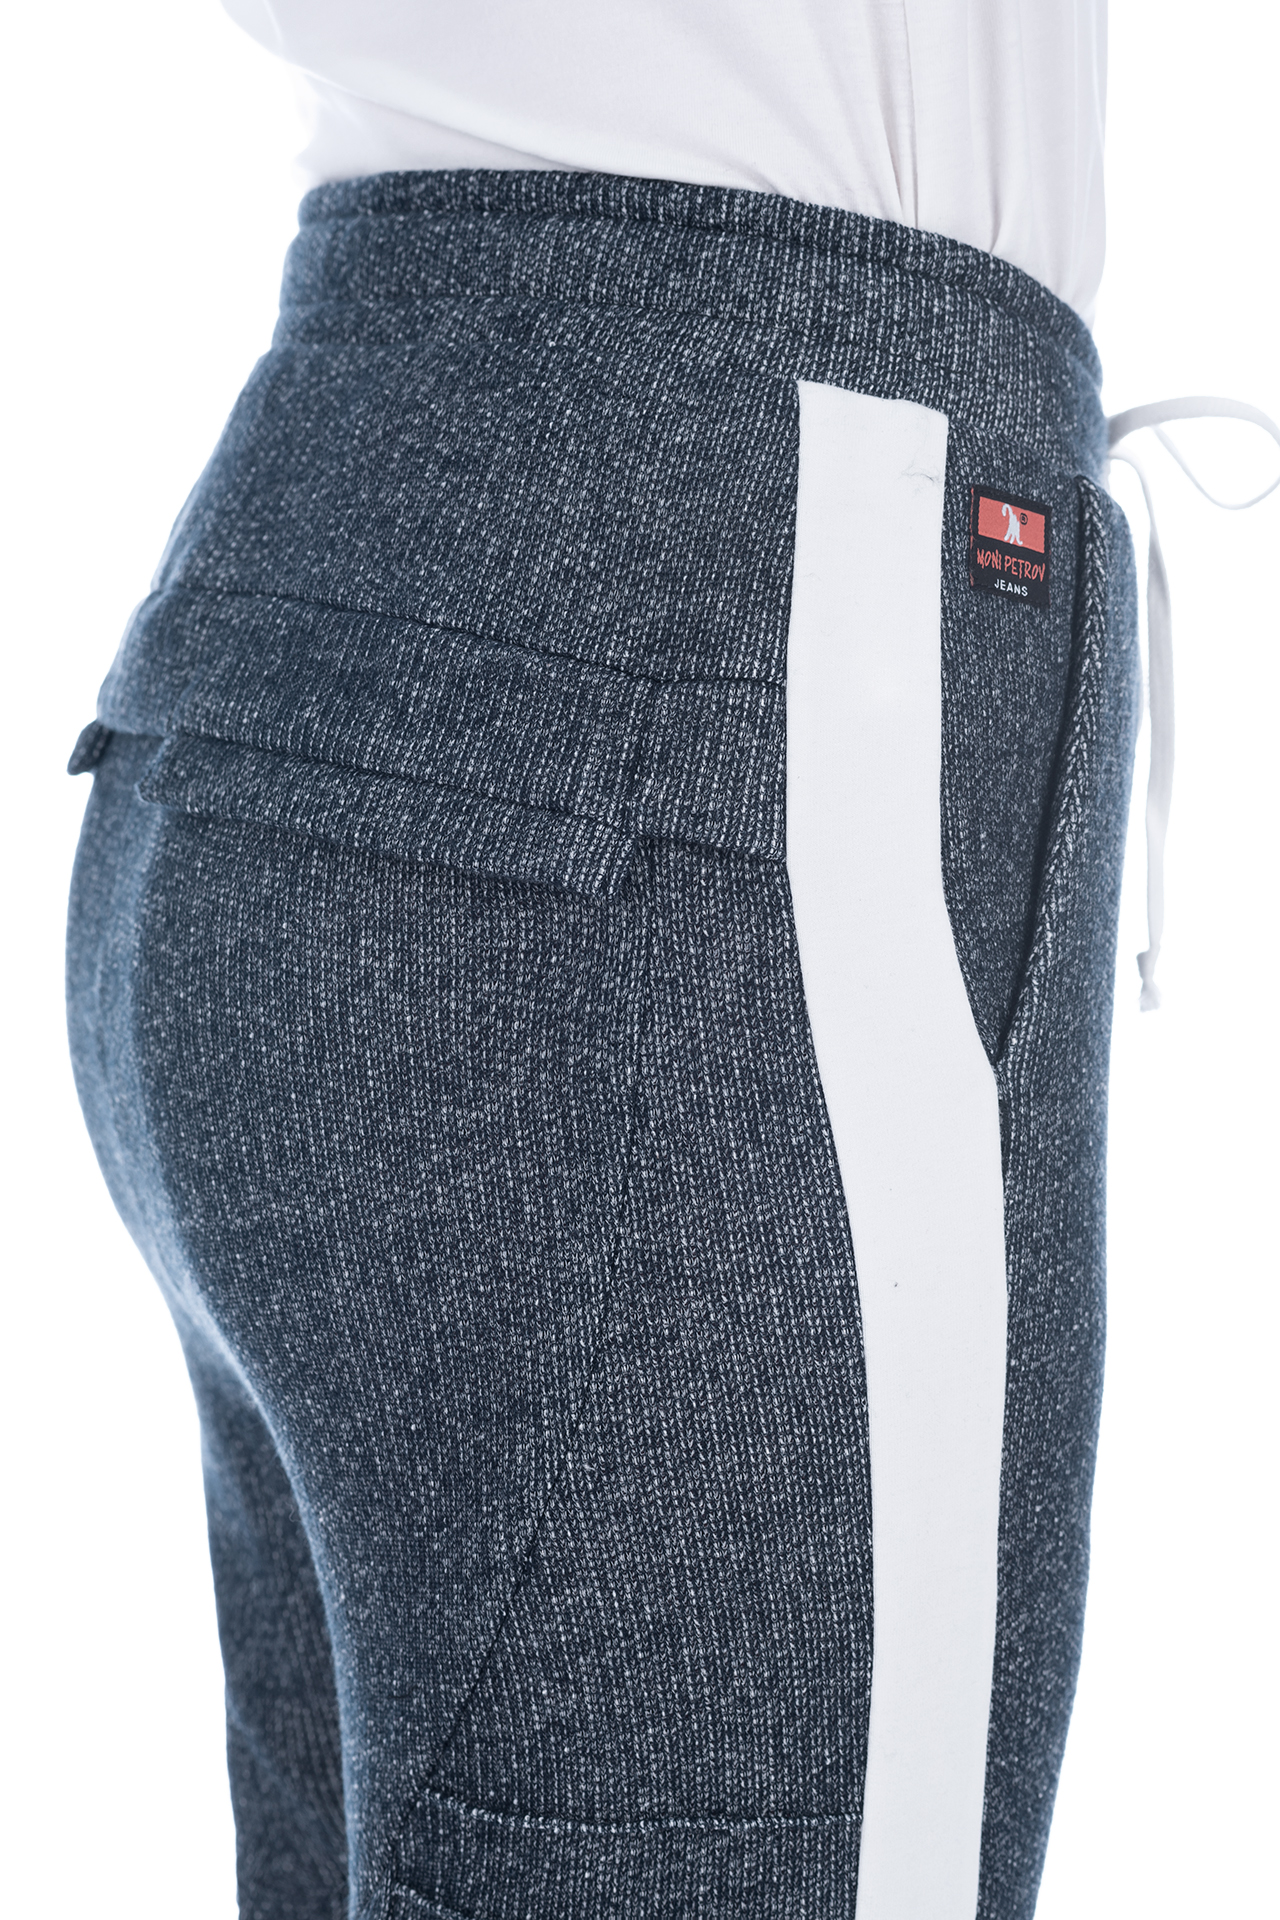 FRENCH TERRY PANT BLUE 4